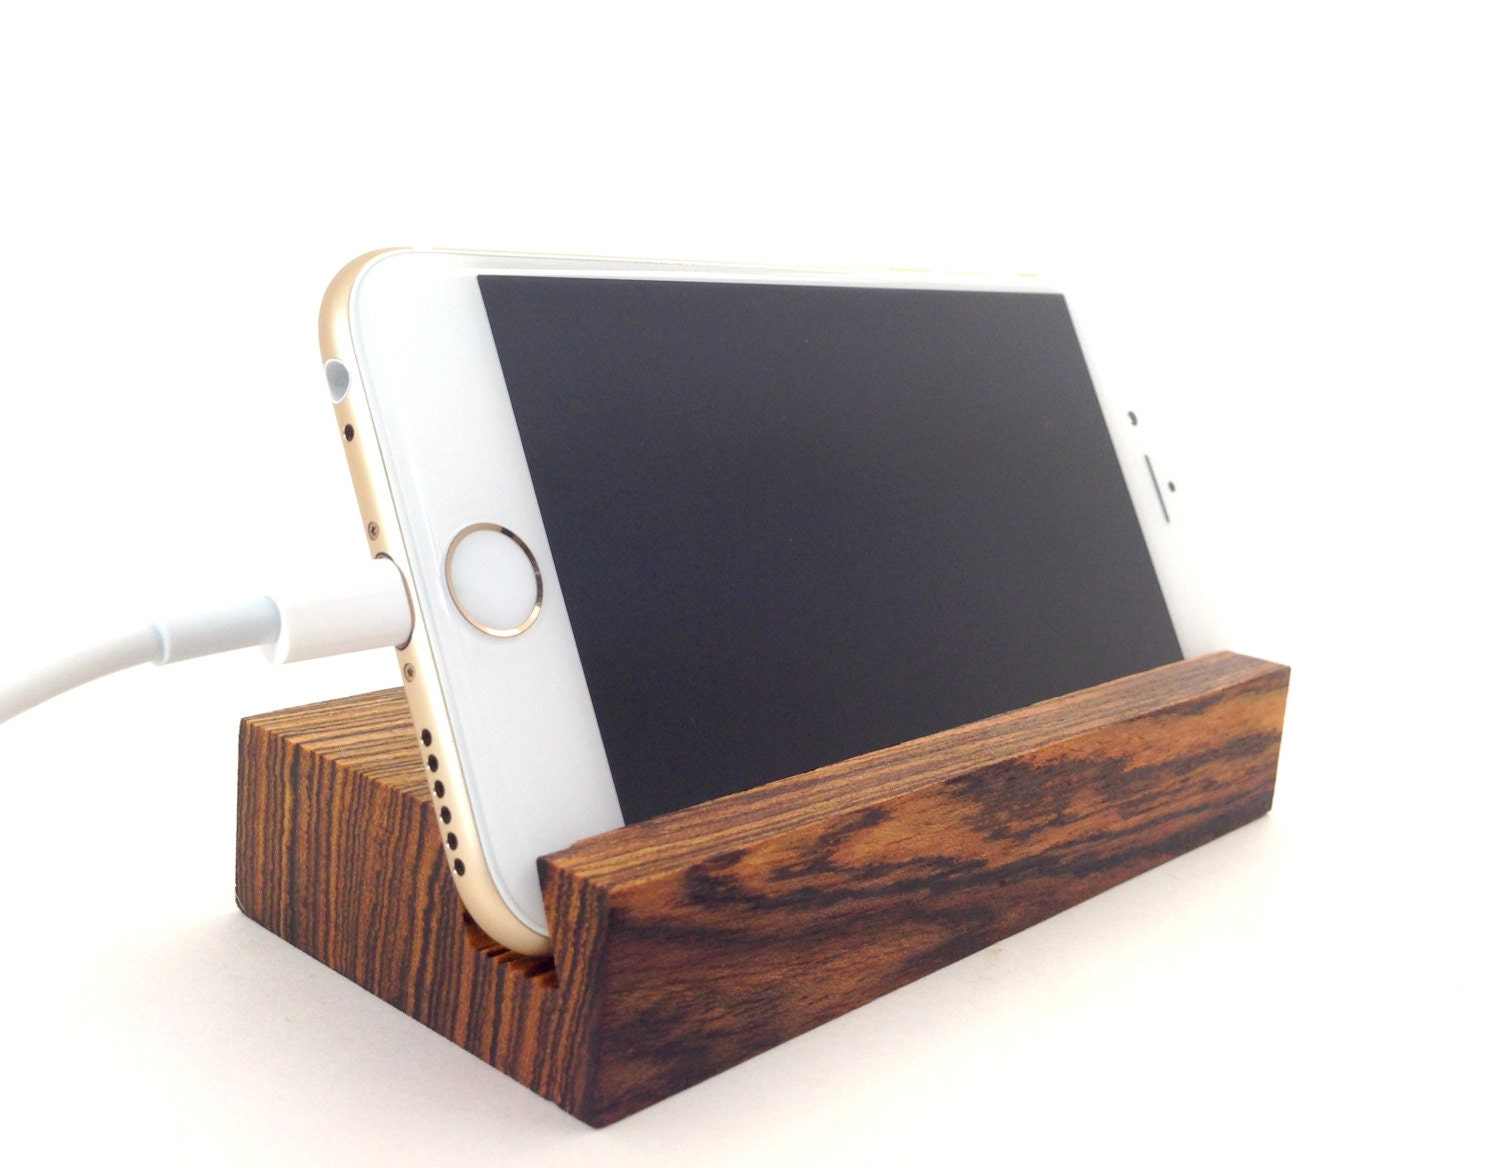 tablet holder pencil lead iphone office ipad for desk pen tidy cutout lean itm organiser j stand white phone me